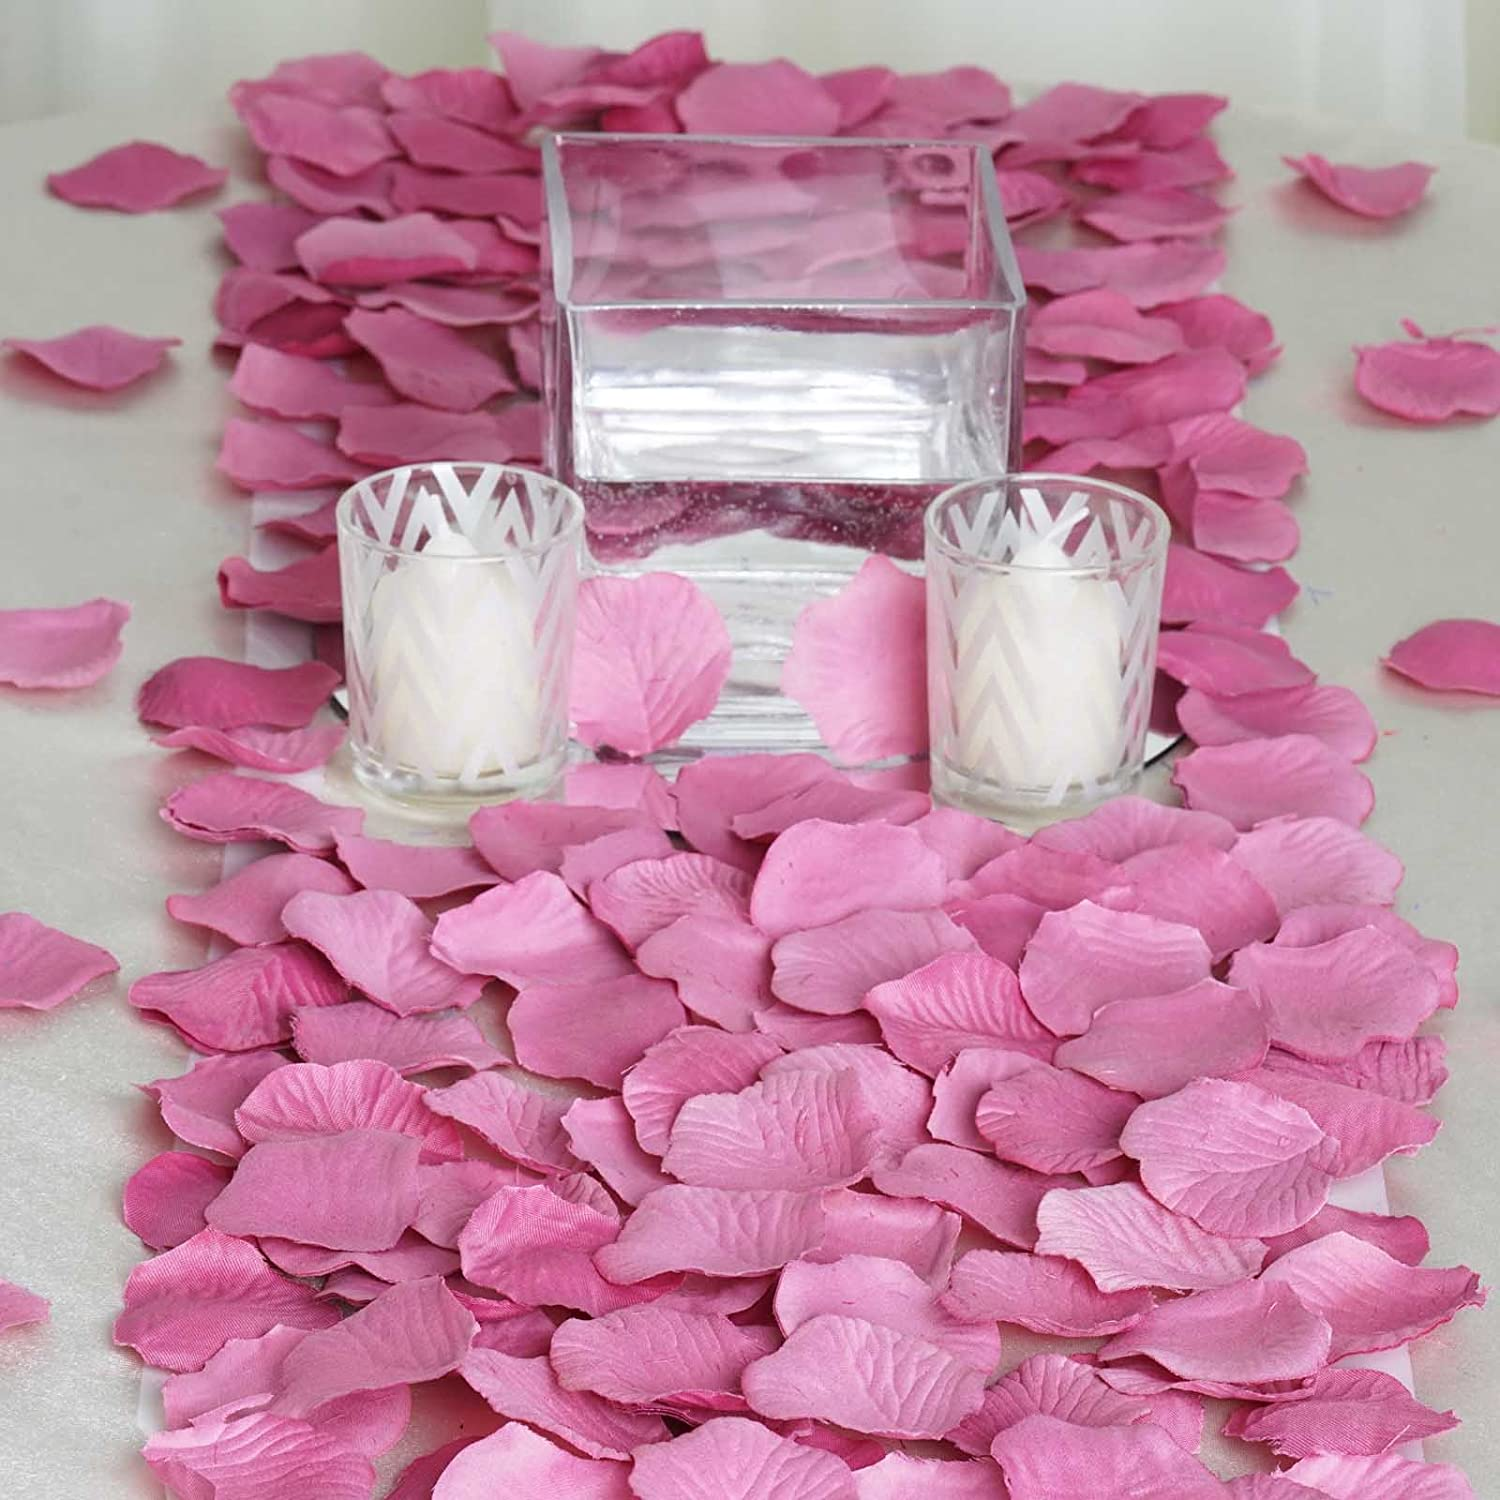 Amazon.com: BalsaCircle 4000 Silk Rose Artificial Petals Supplies ...